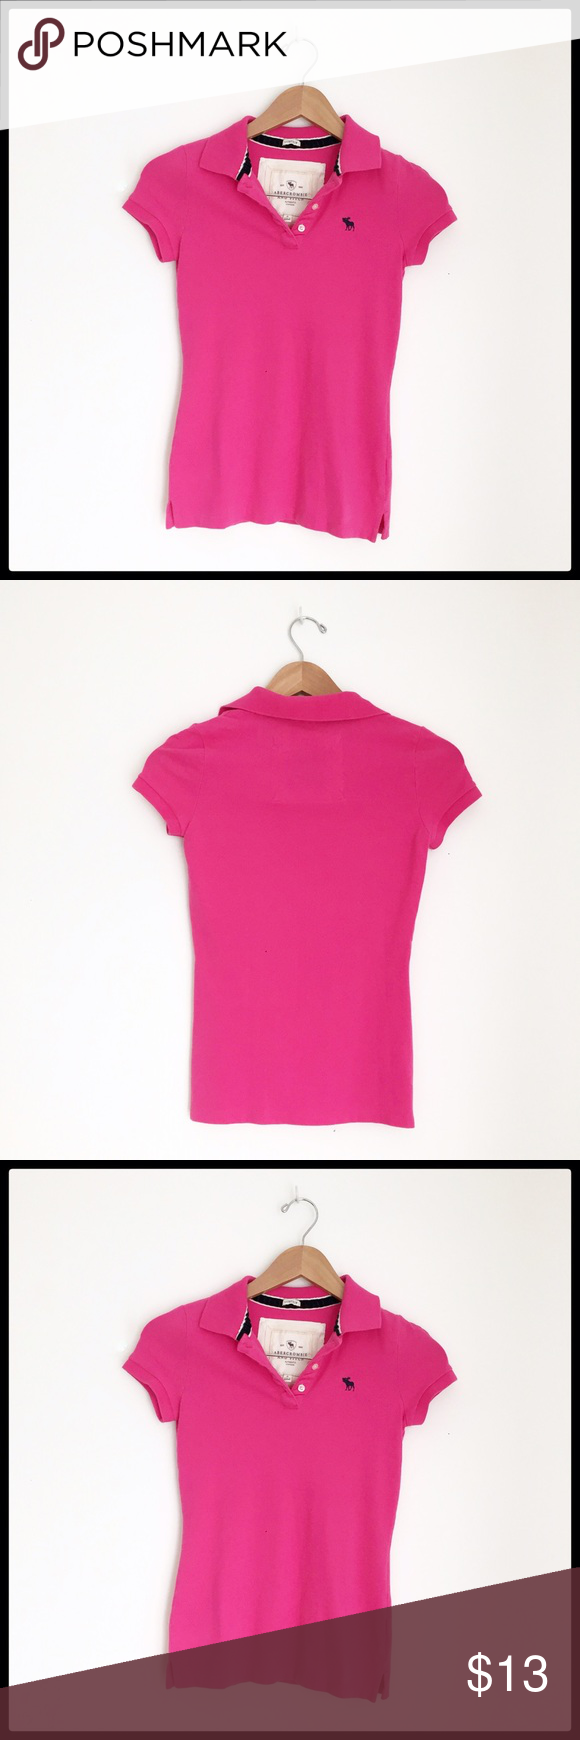 Abercrombie Fitch Bright pink Abercrombie Stretch Polo Shirt! Great condition! Abercrombie & Fitch Tops Tees - Short Sleeve